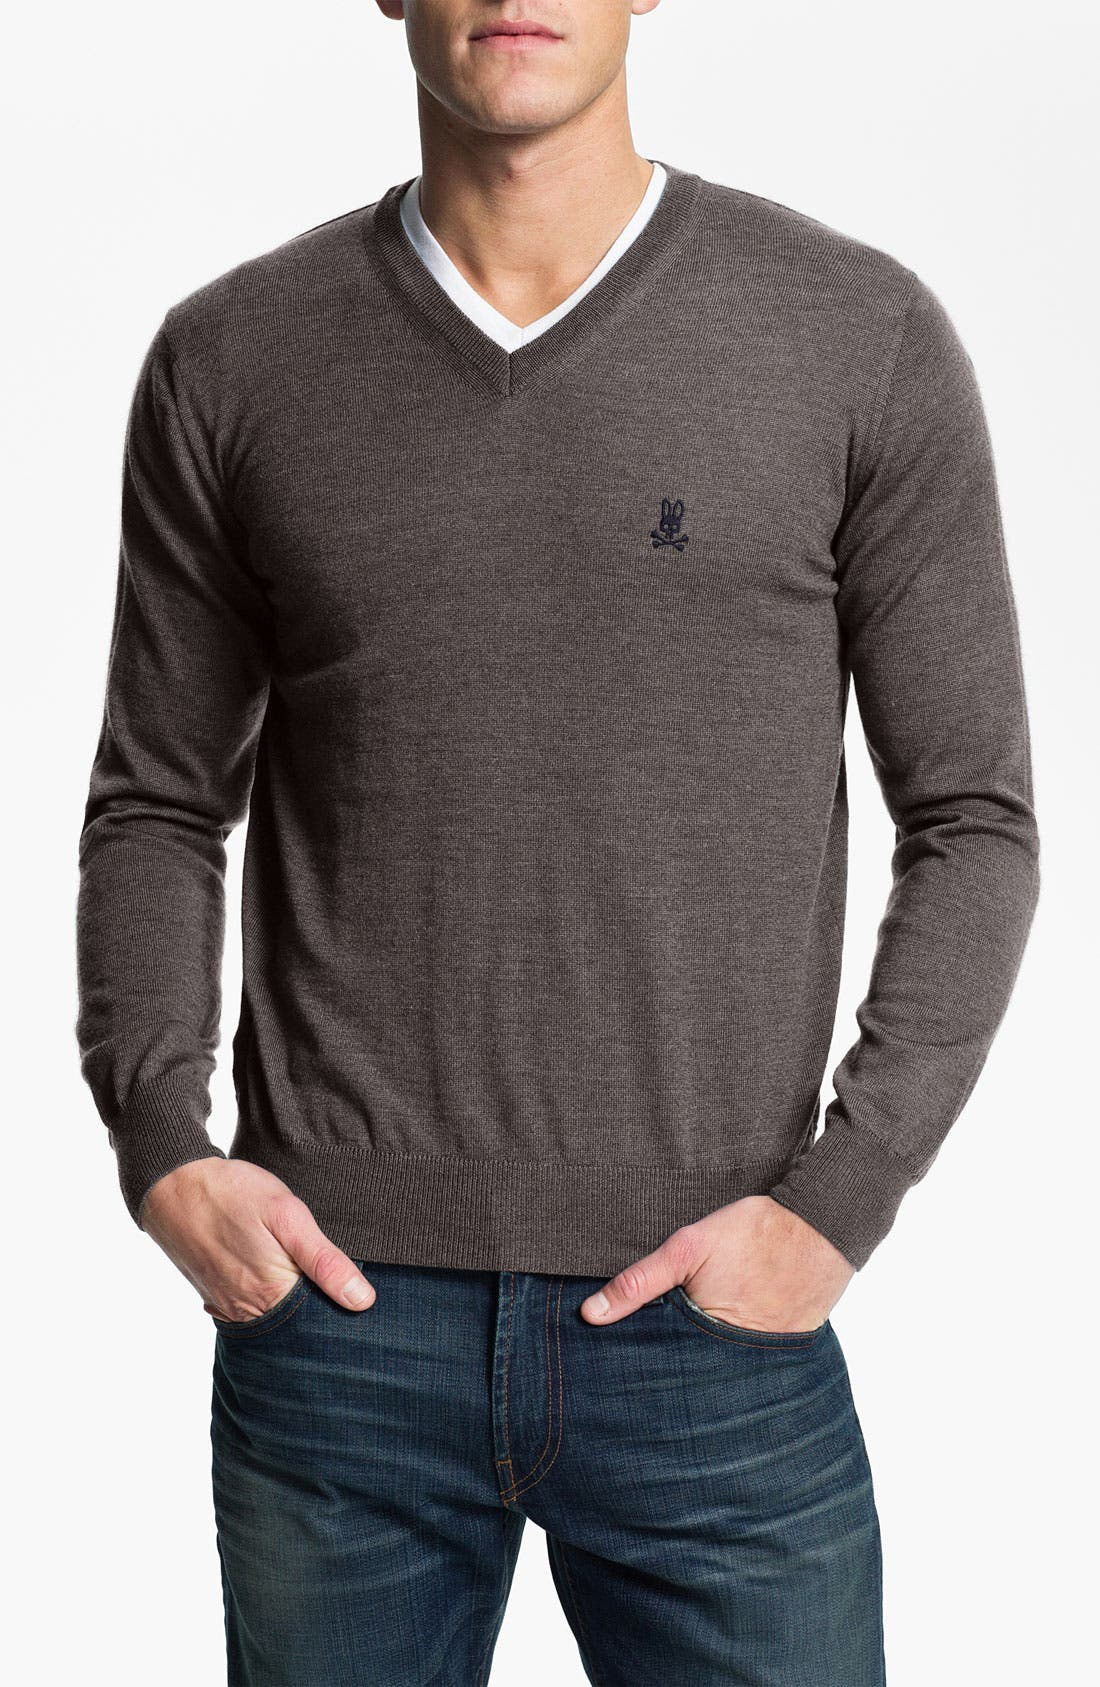 Main Image - Psycho Bunny Merino Wool V-Neck Sweater